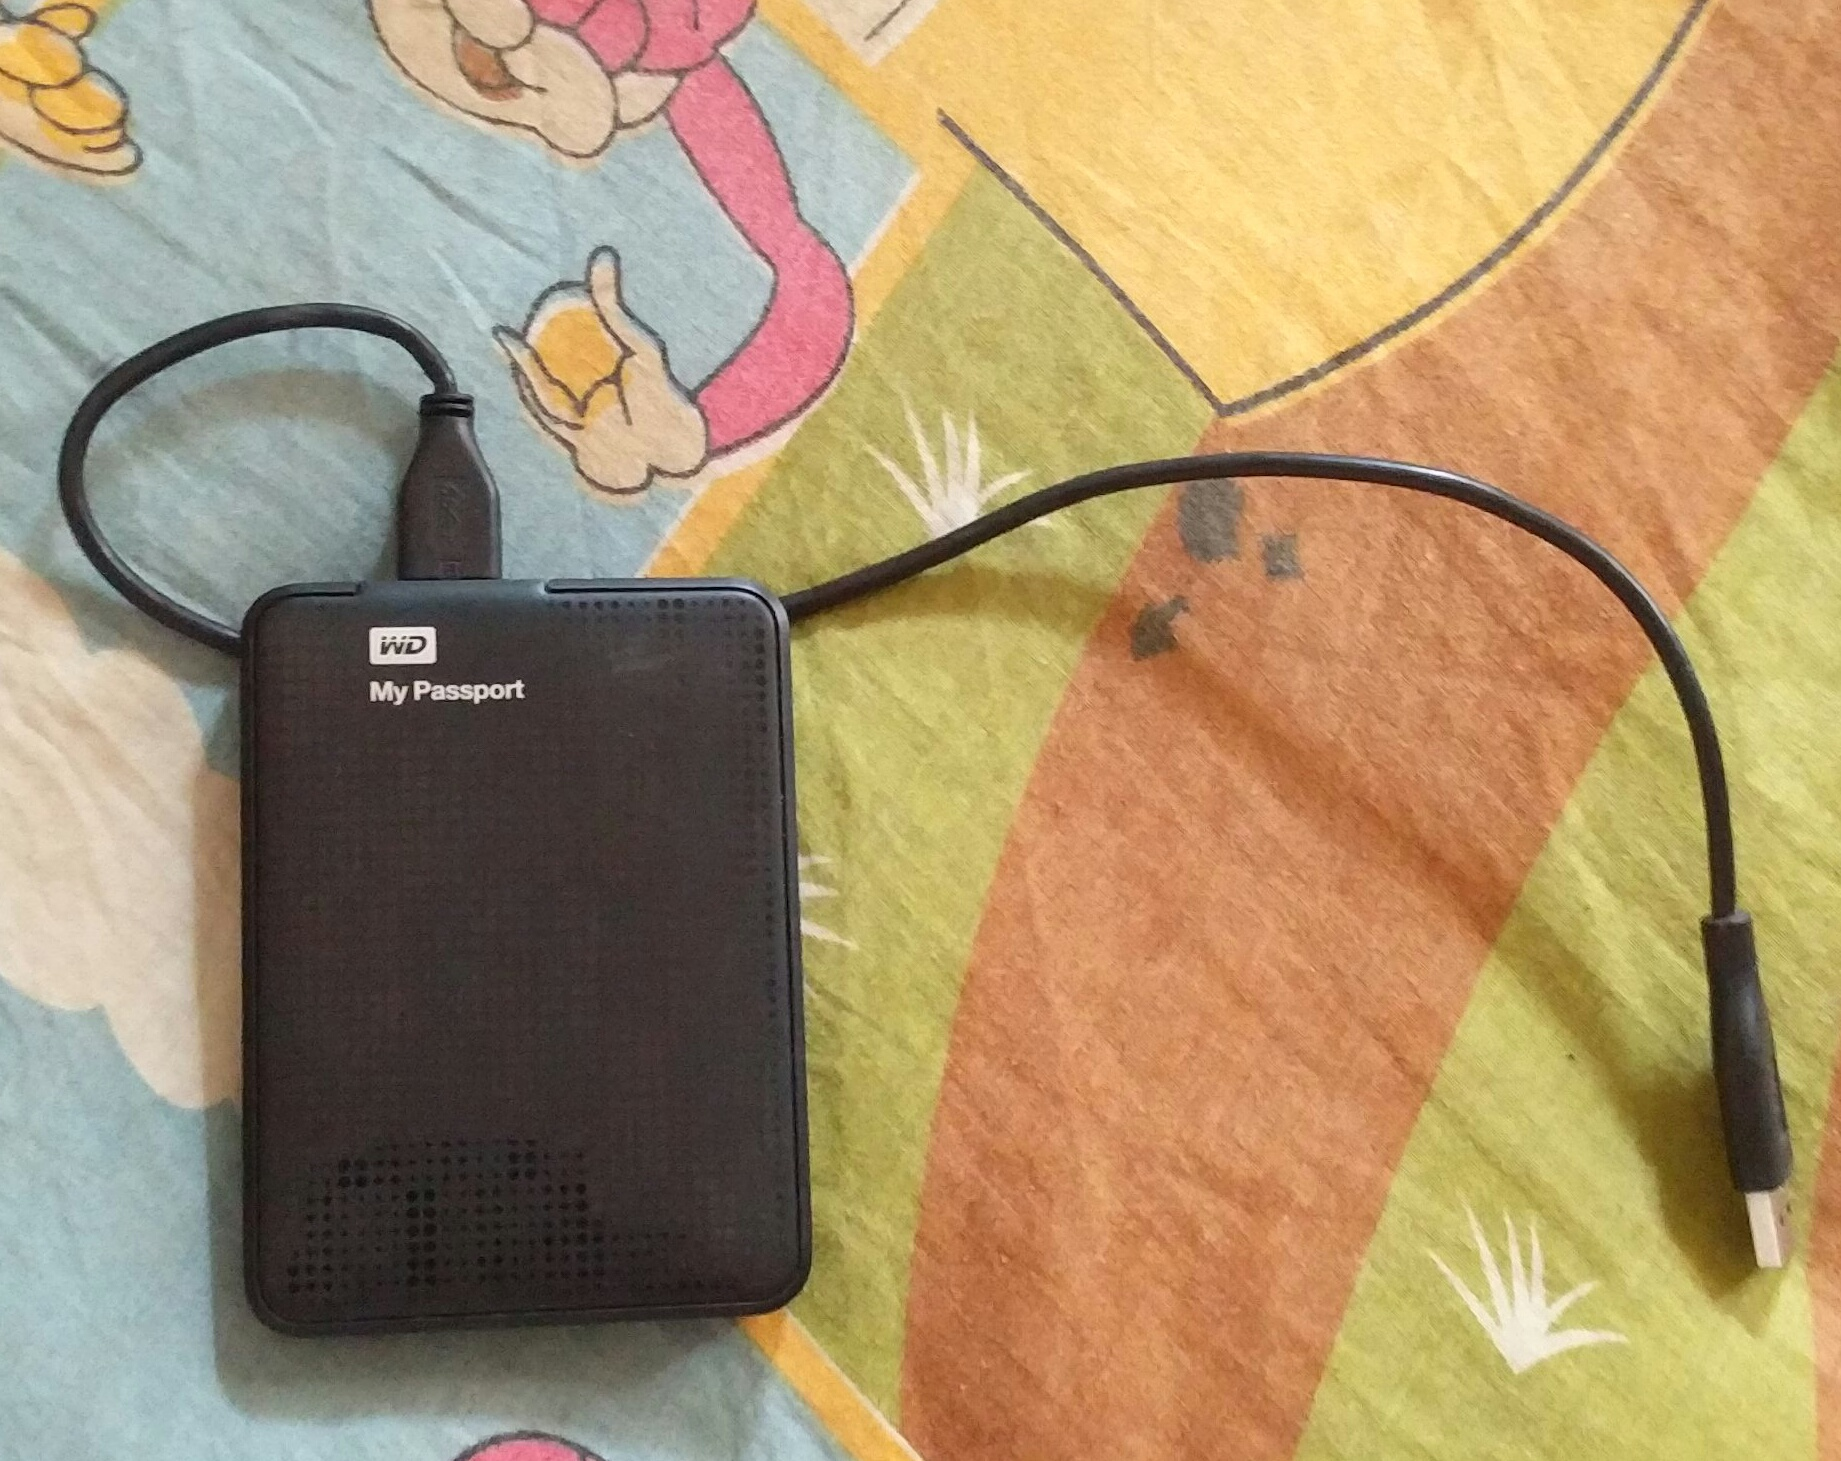 Fake 1tb Prtable Wd Elements Portable External Hard Drive Hardisk Good As Whenever I Called The Care Service Got A Suggestion Therehence Should Suggest Element Company To Improve This Disk